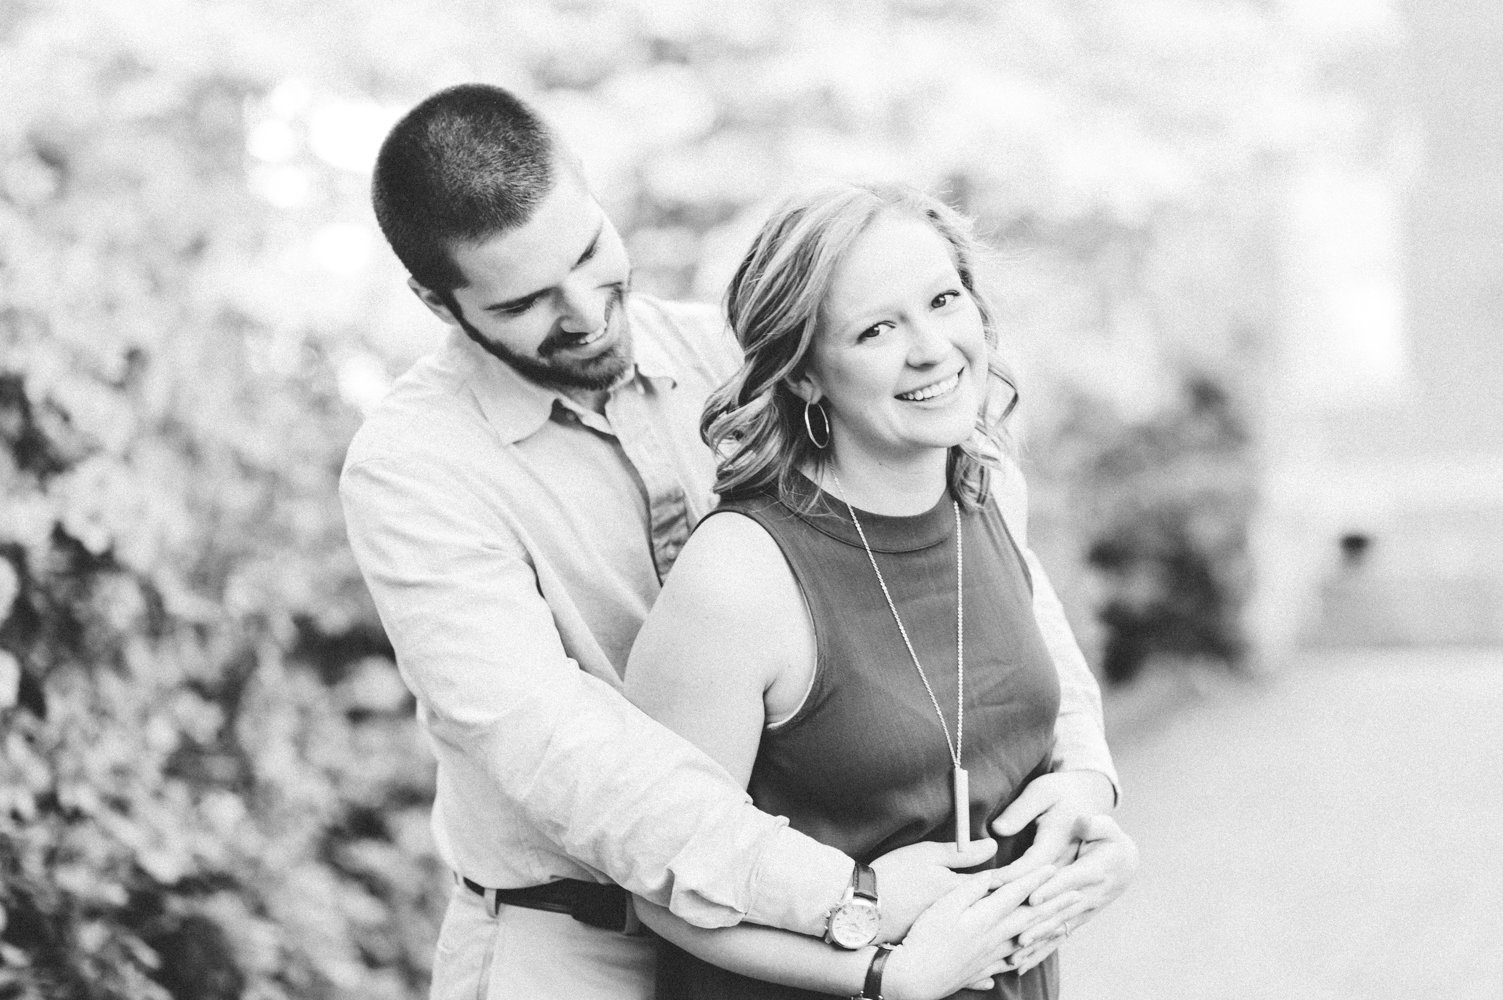 engagement-portraits-christina-forbes-photography-26